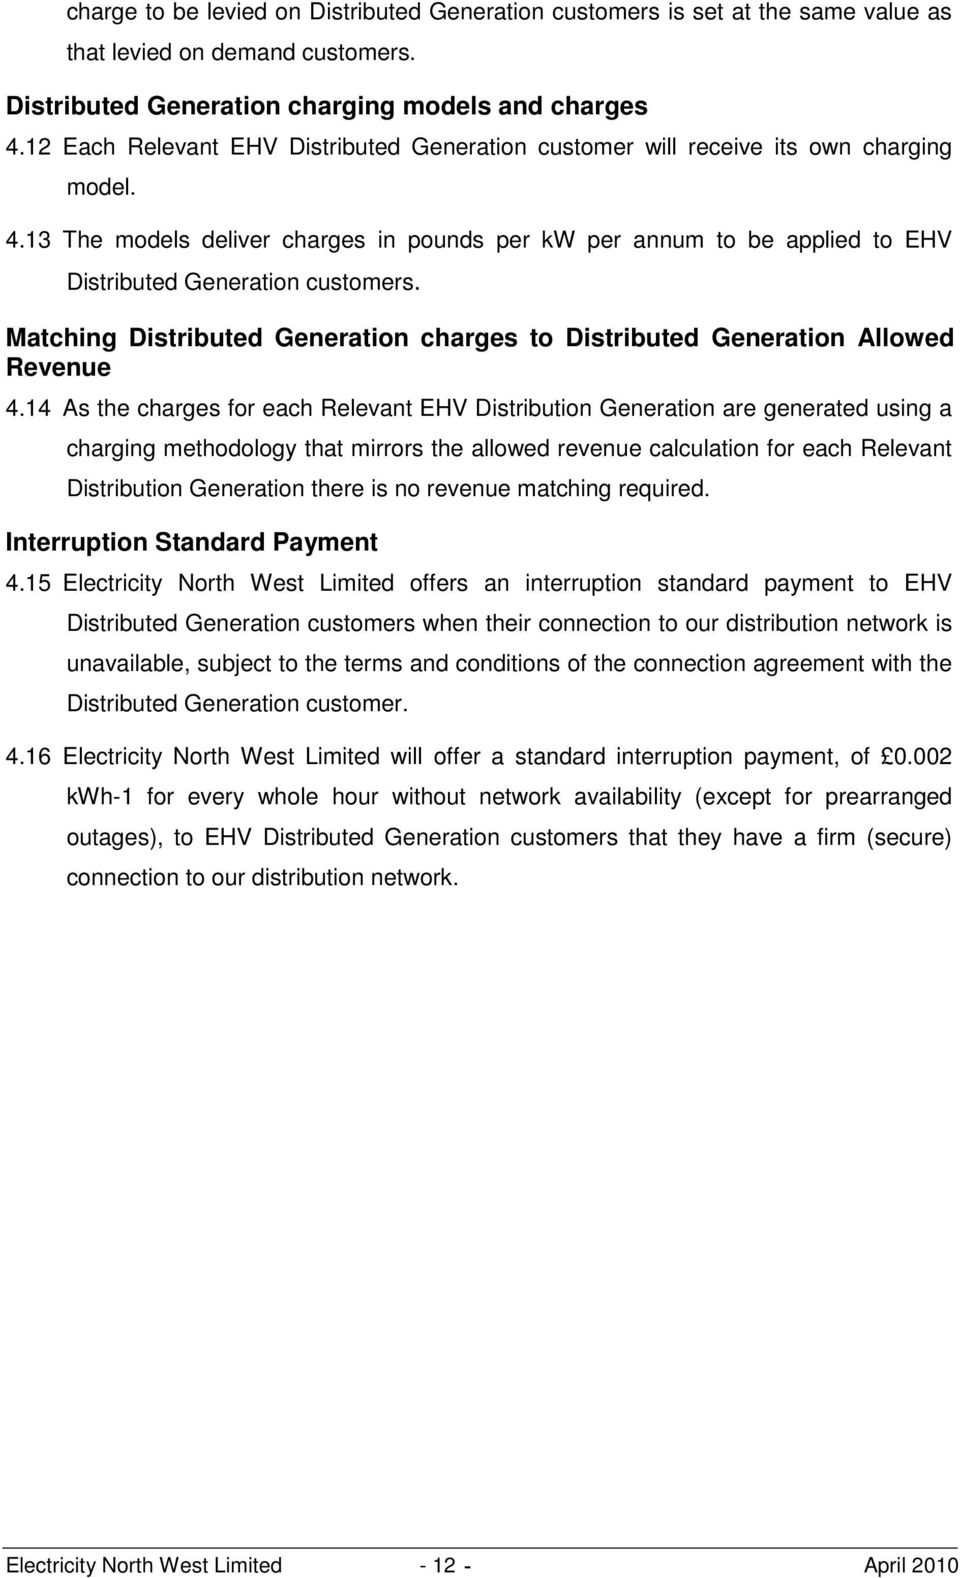 13 The models deliver charges in pounds per kw per annum to be applied to EHV Distributed Generation customers. Matching Distributed Generation charges to Distributed Generation Allowed Revenue 4.